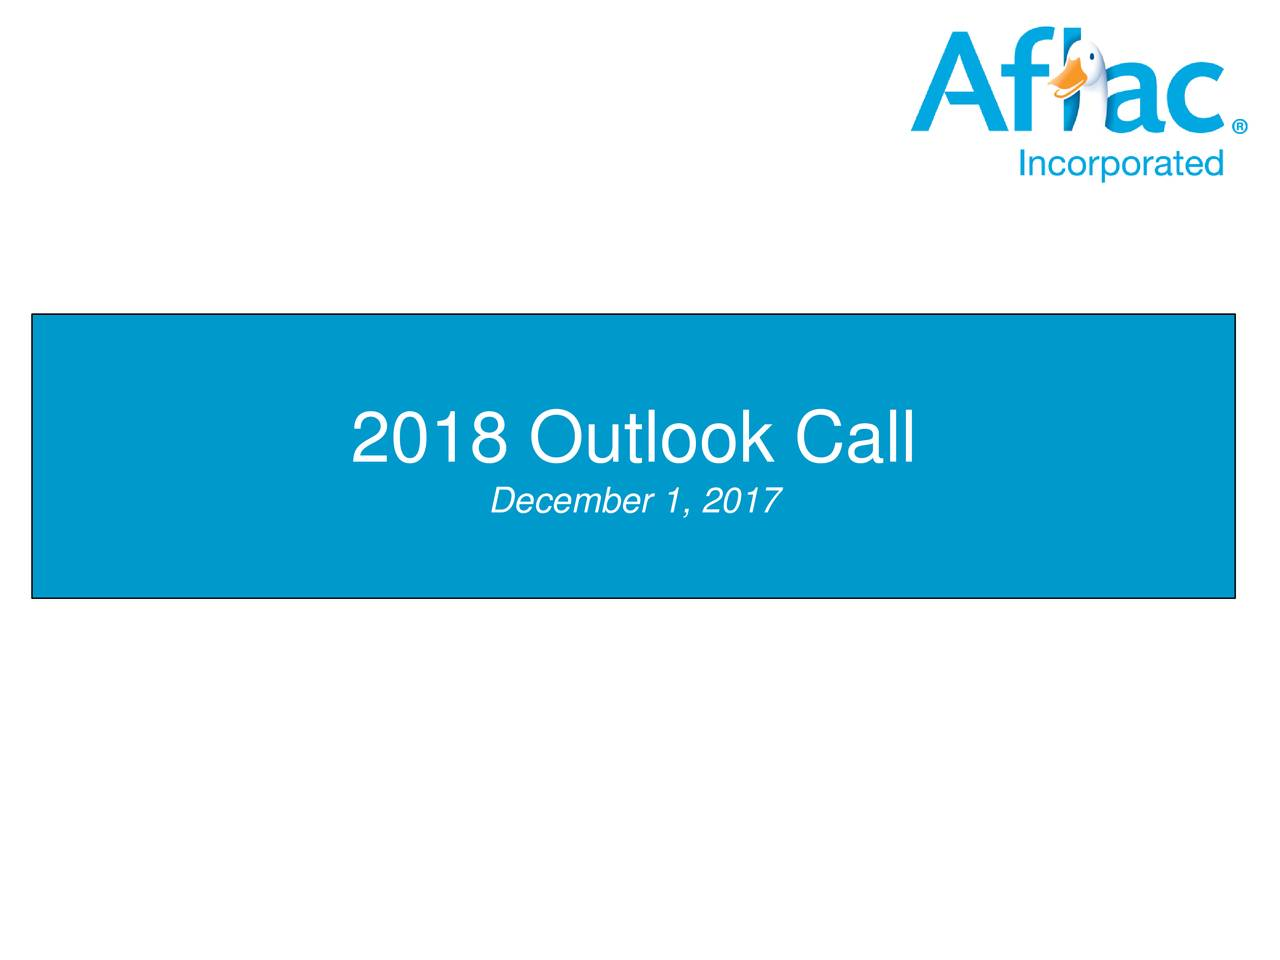 Aflac Quote Aflac Afl 2018 Guidance Call  Slideshow  Aflac Incorporated